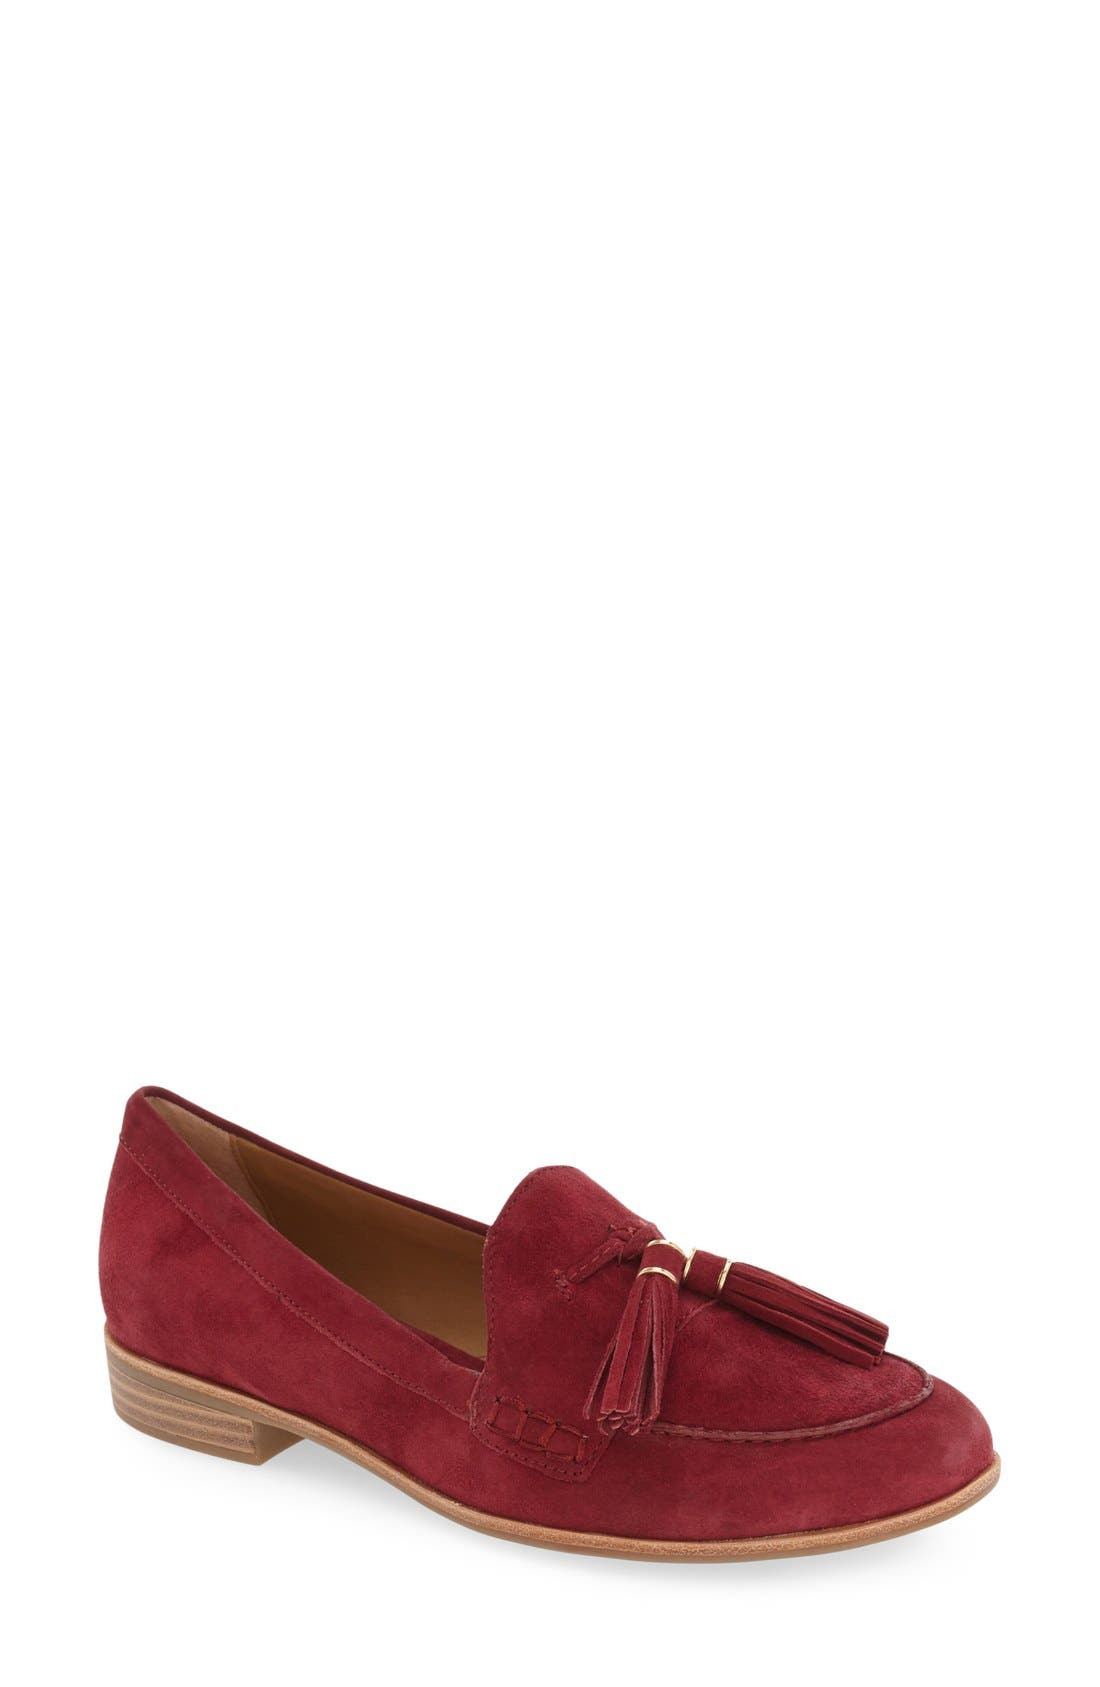 G.H. Bass & Co. 'Estelle' Tassel Loafer (Women)